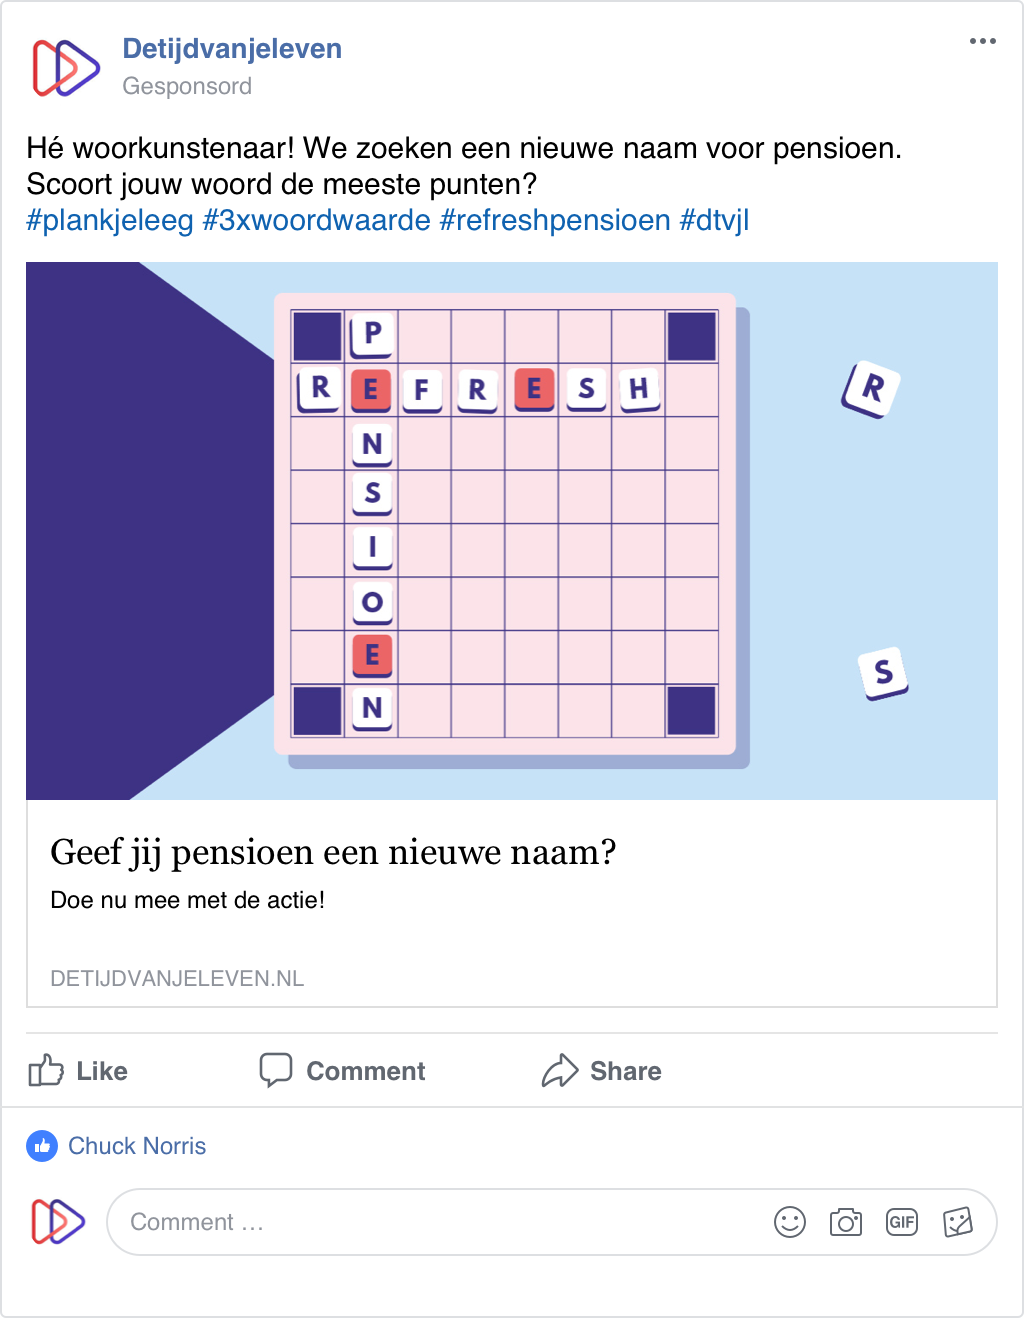 Refreshpensioen socialpost scrabble